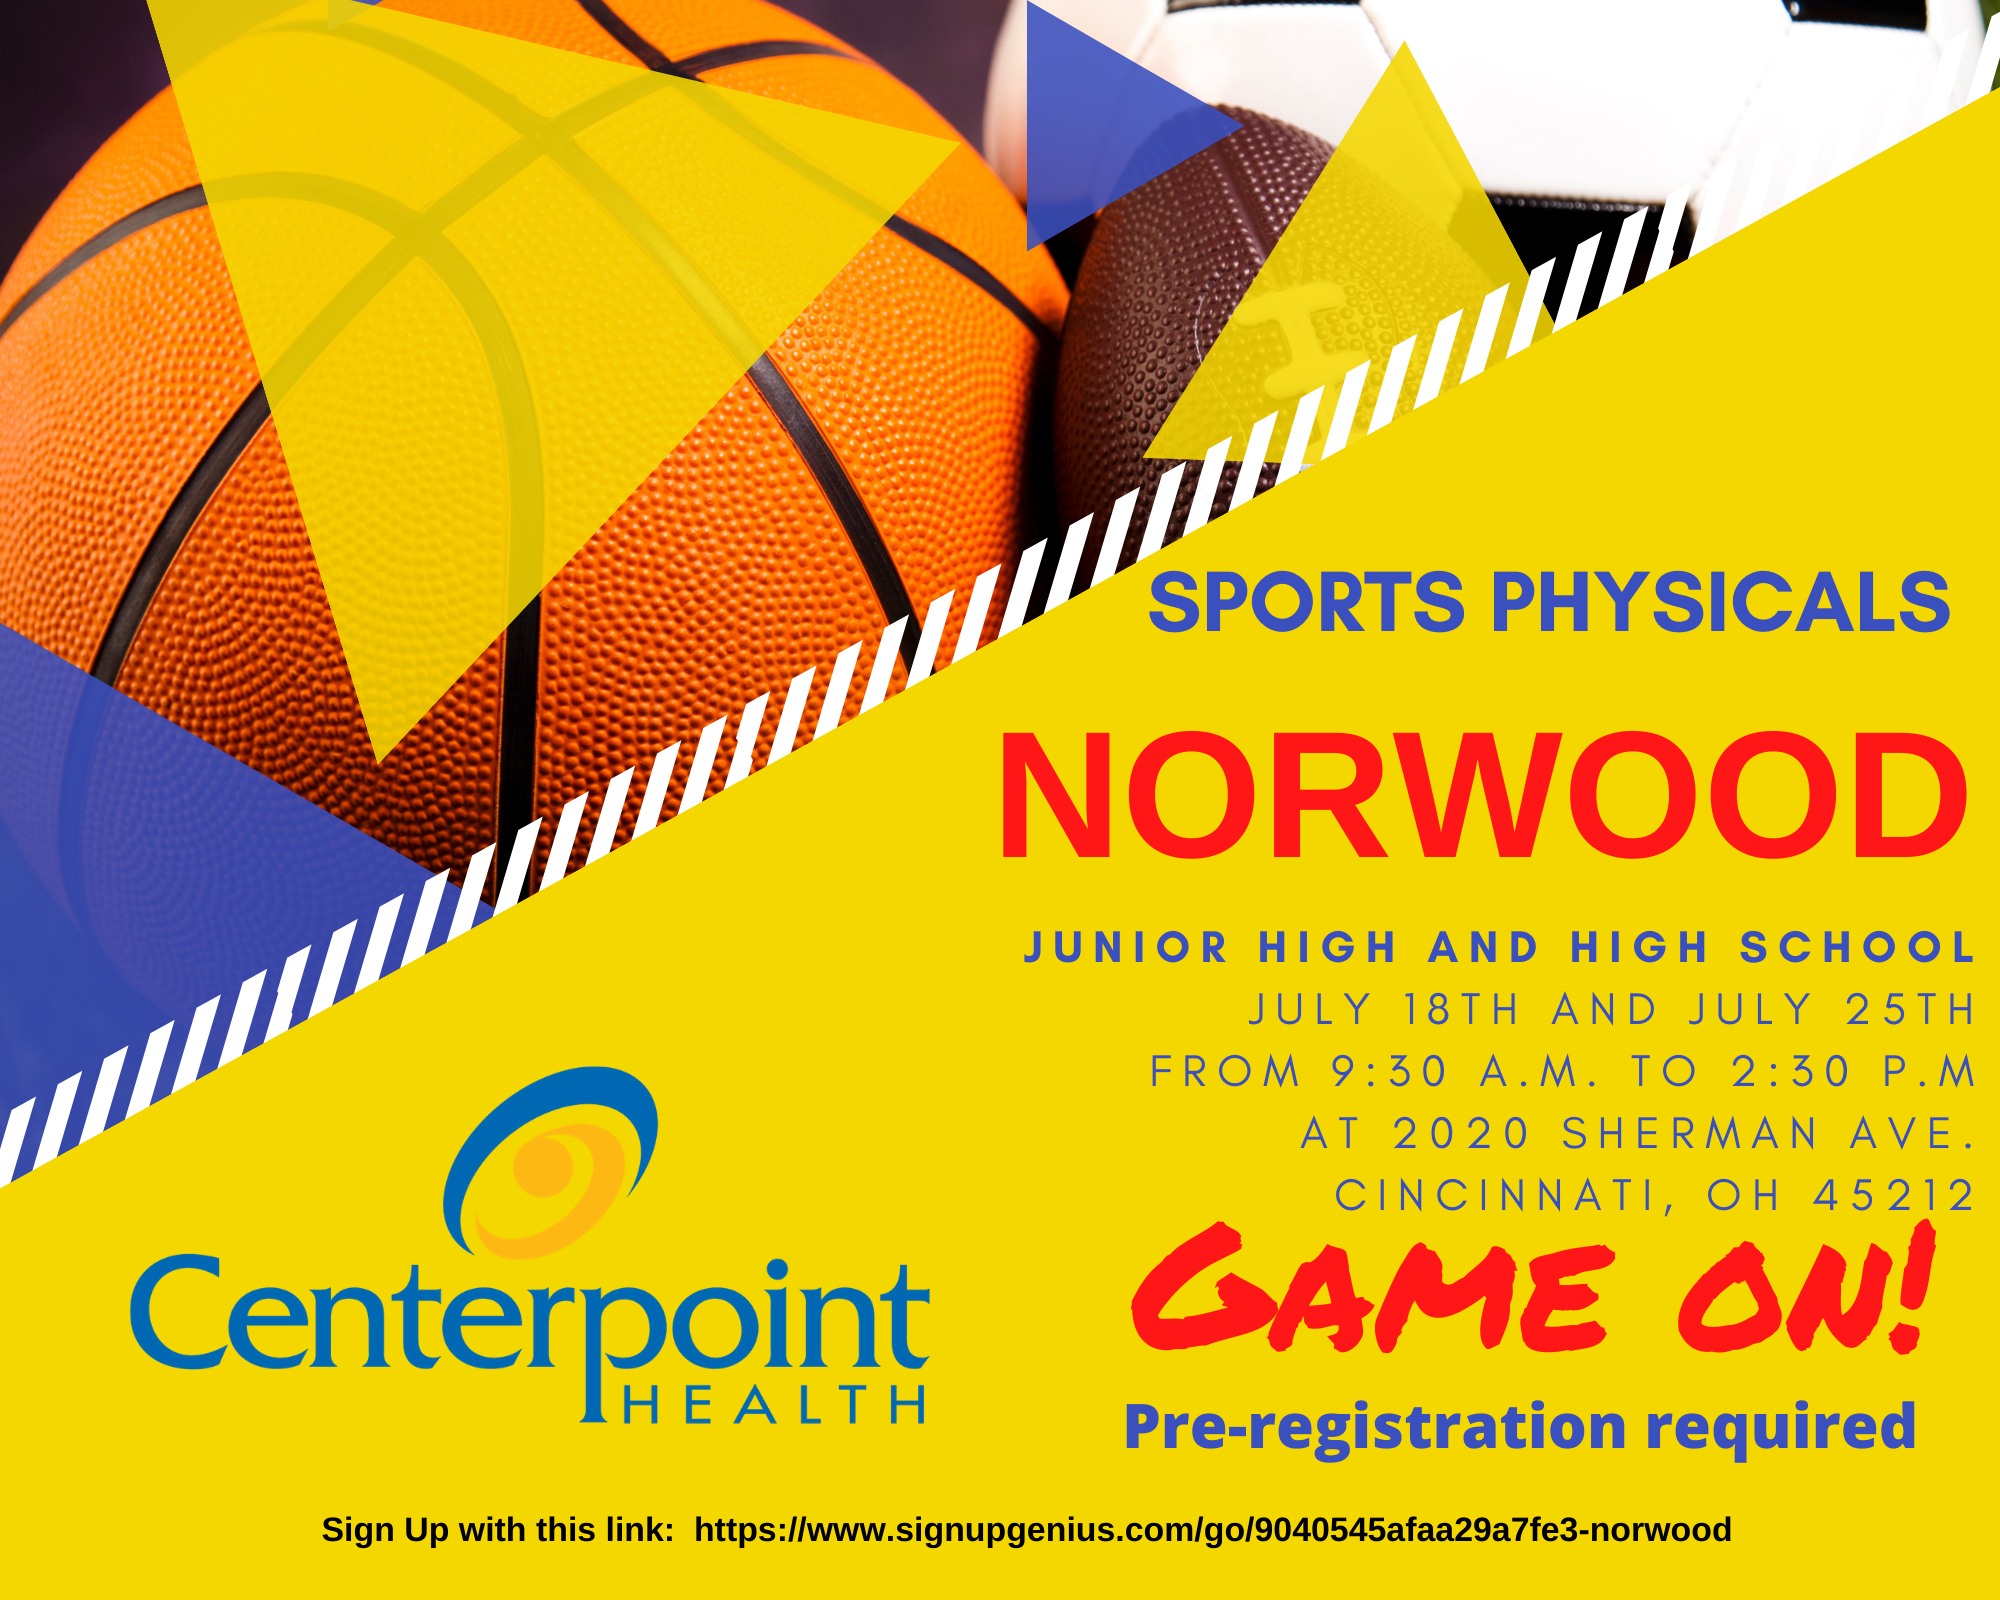 Norwood Sports Physicals held on July 18 and 25 at Norwood High School.